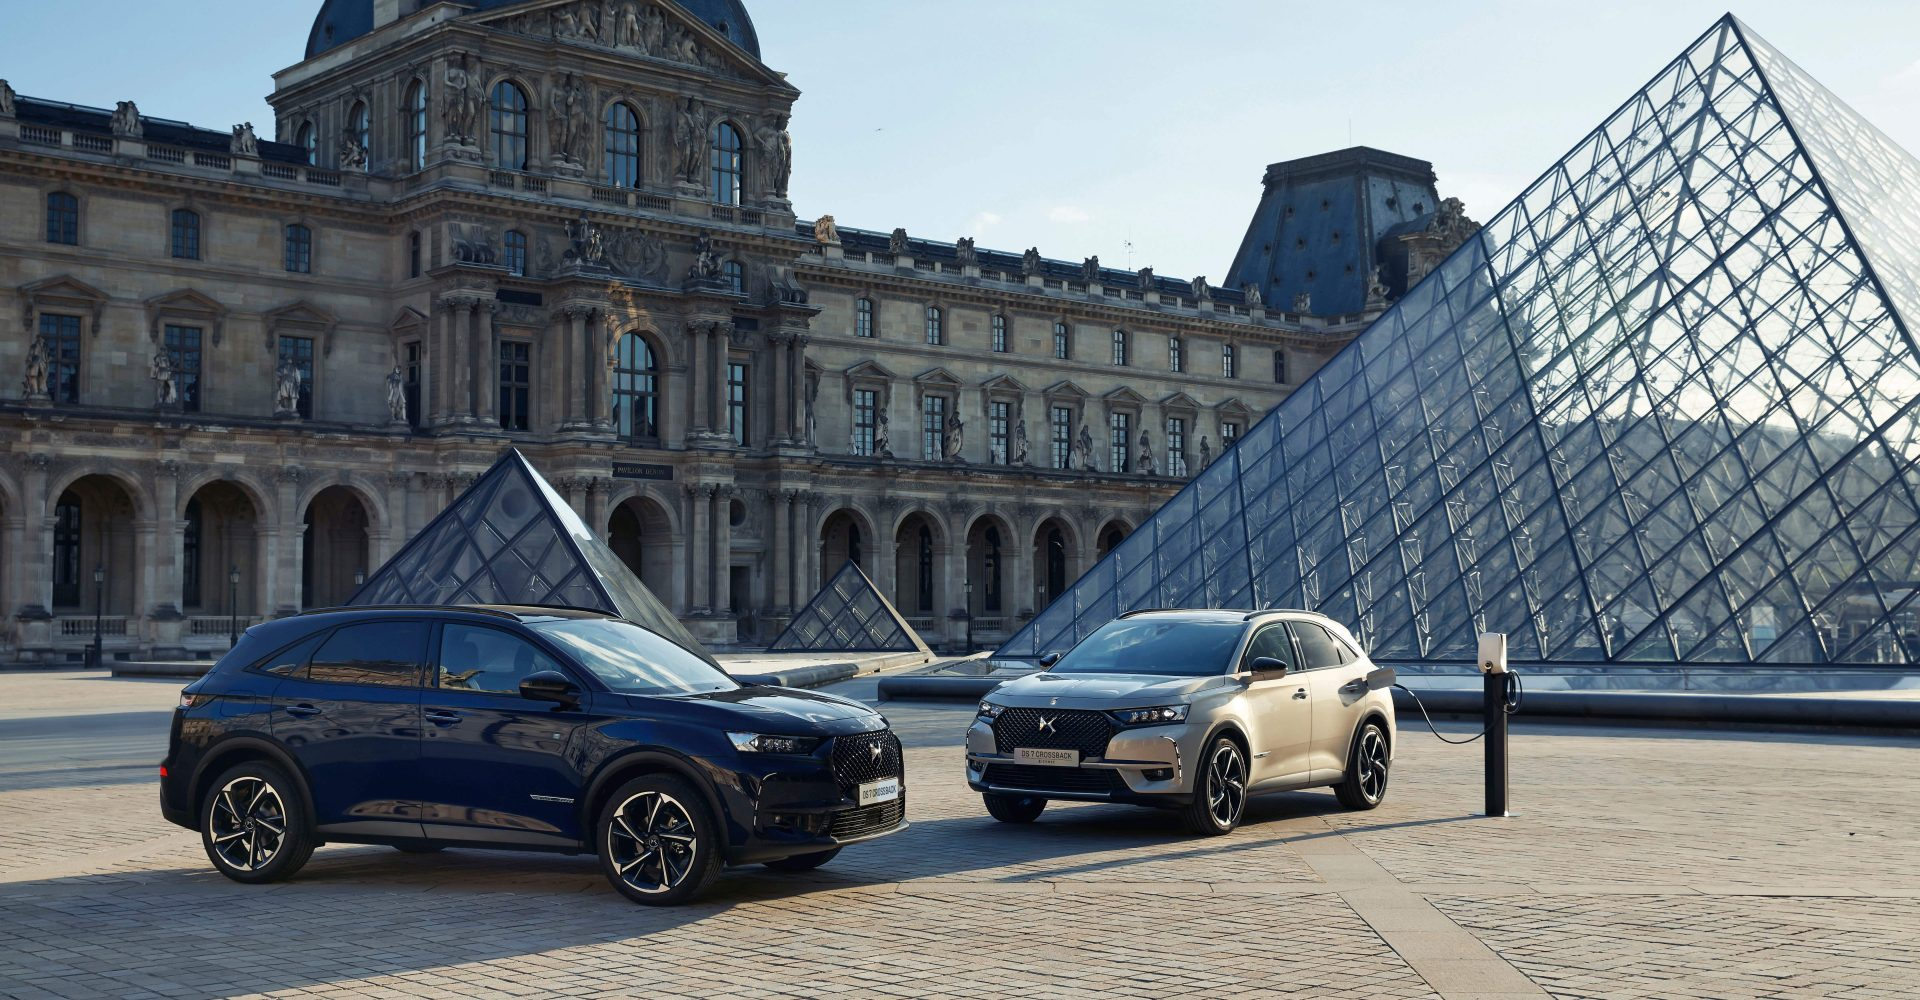 DS Automobiles takes inspiration from Paris landmark with DS 7 Crossback Louvre